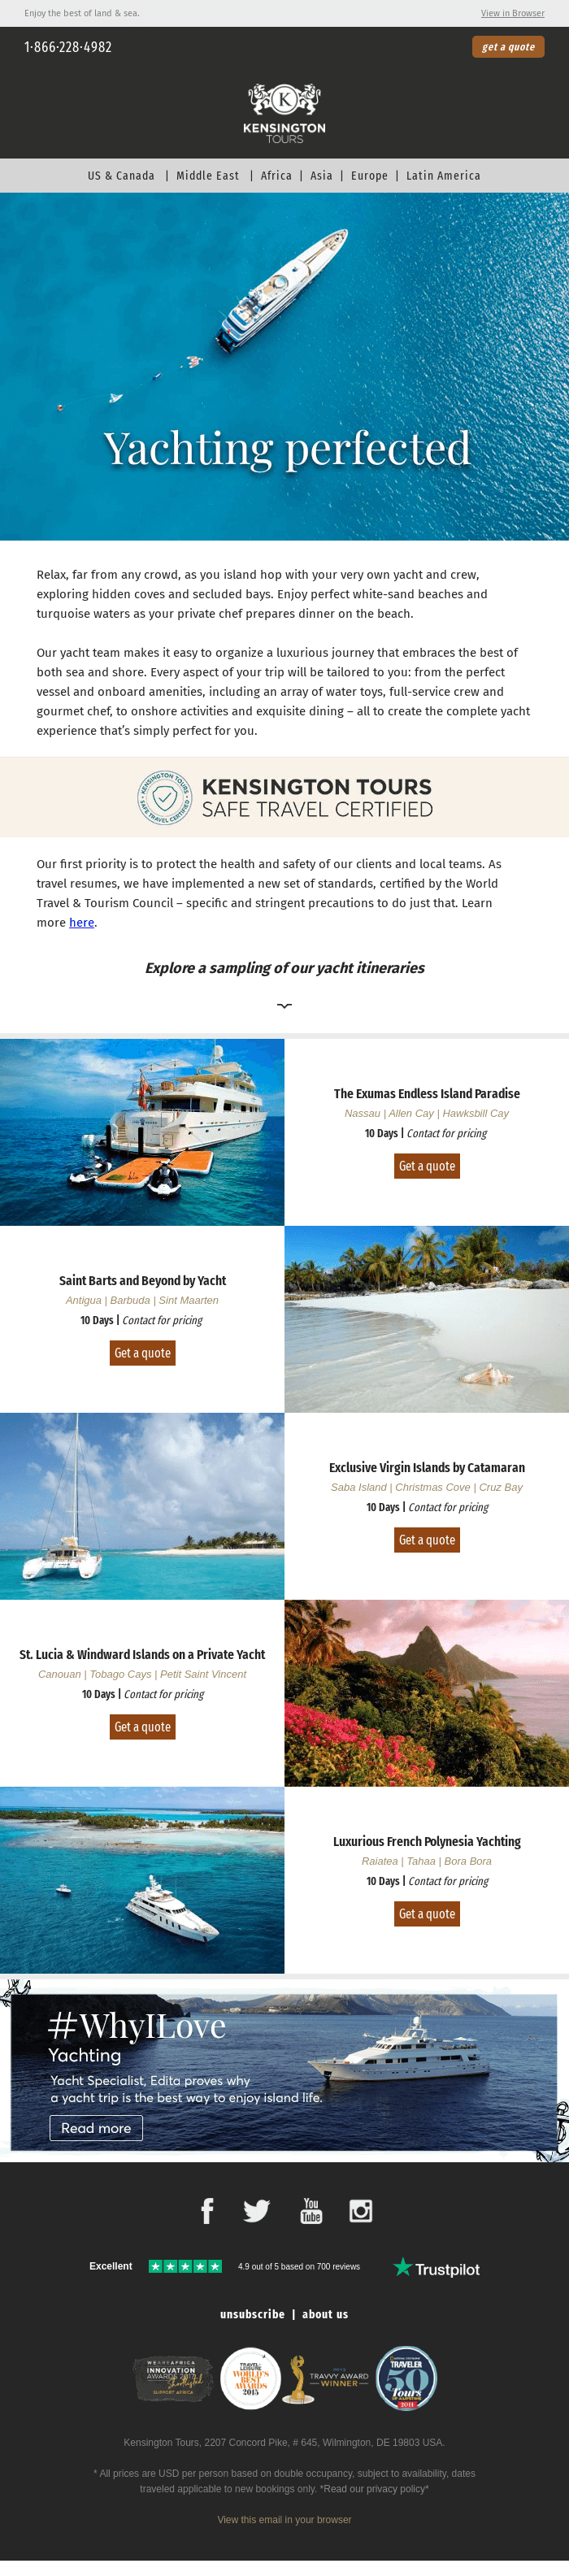 Yachts: a luxurious and enchanting experience